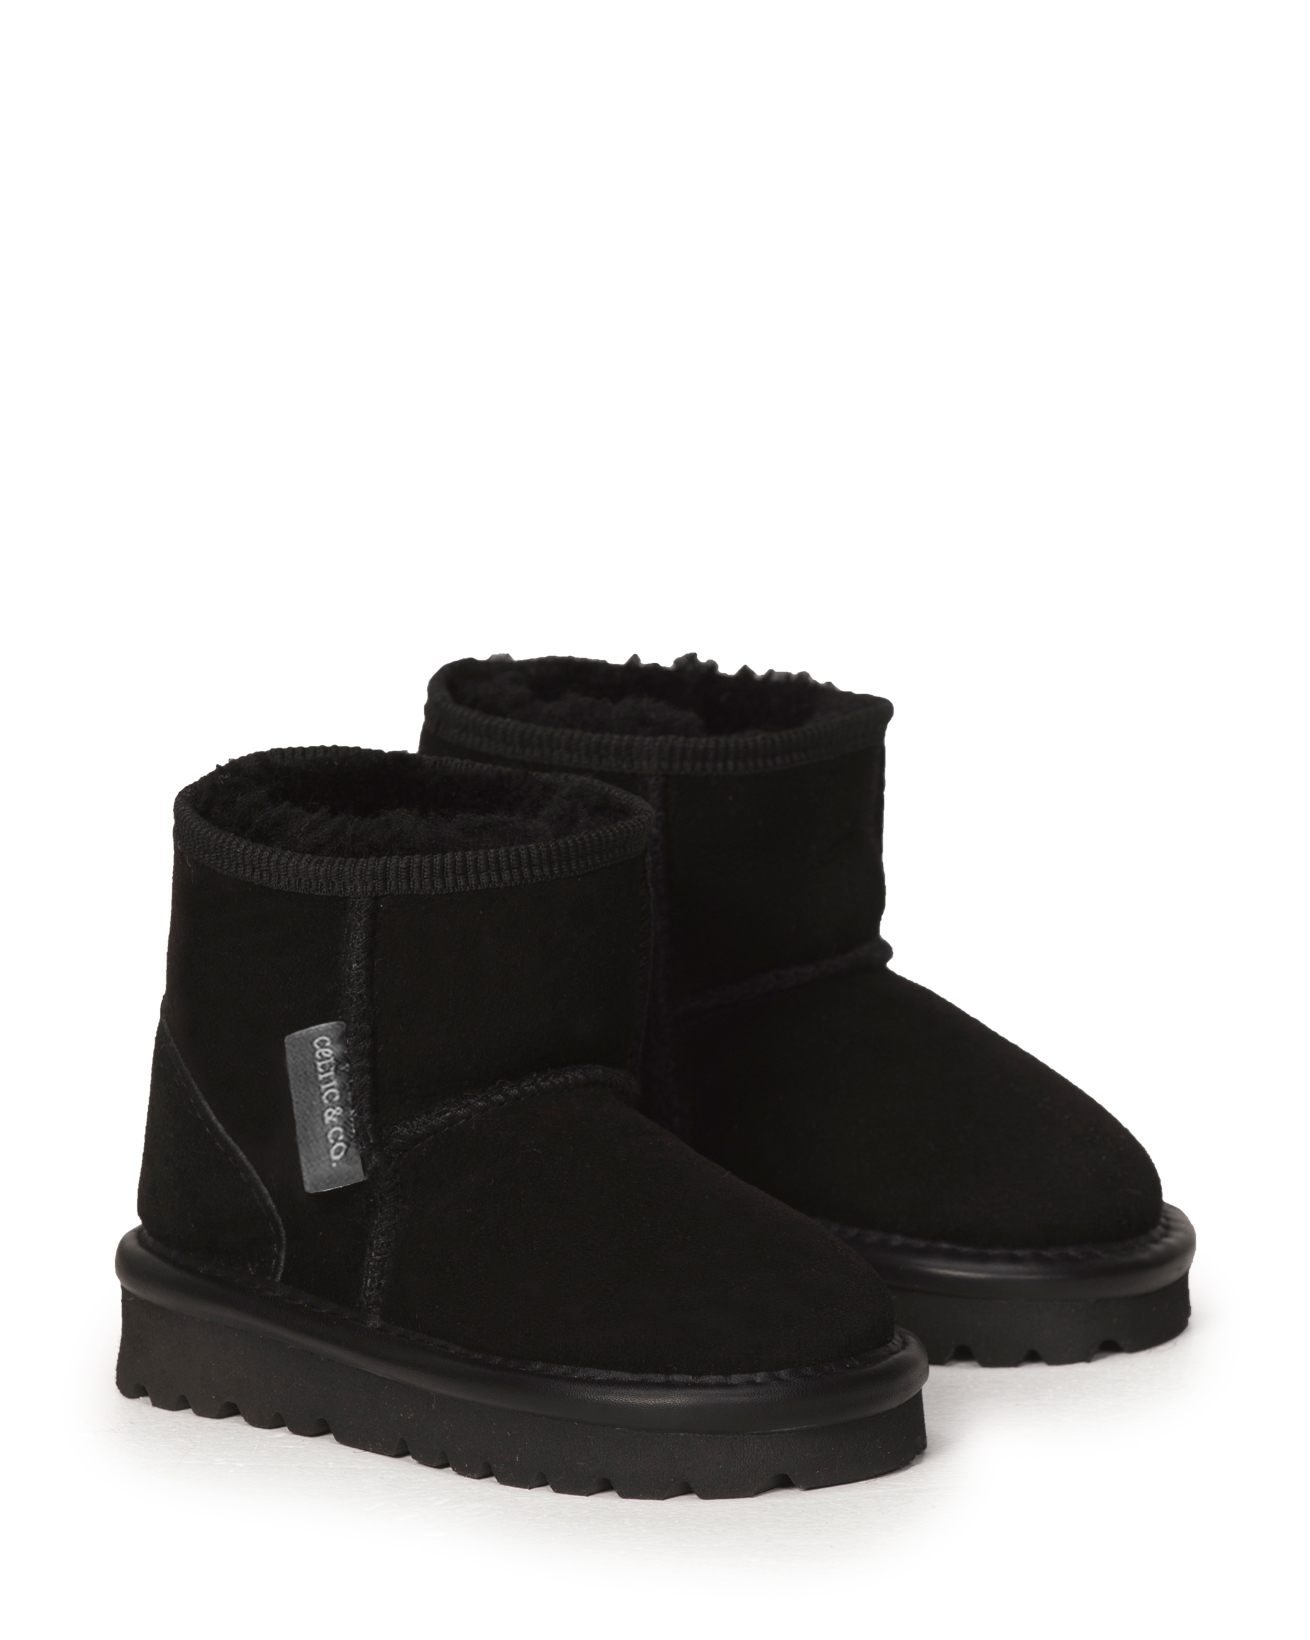 5761-mini-shortie-boot_black_pair.jpg